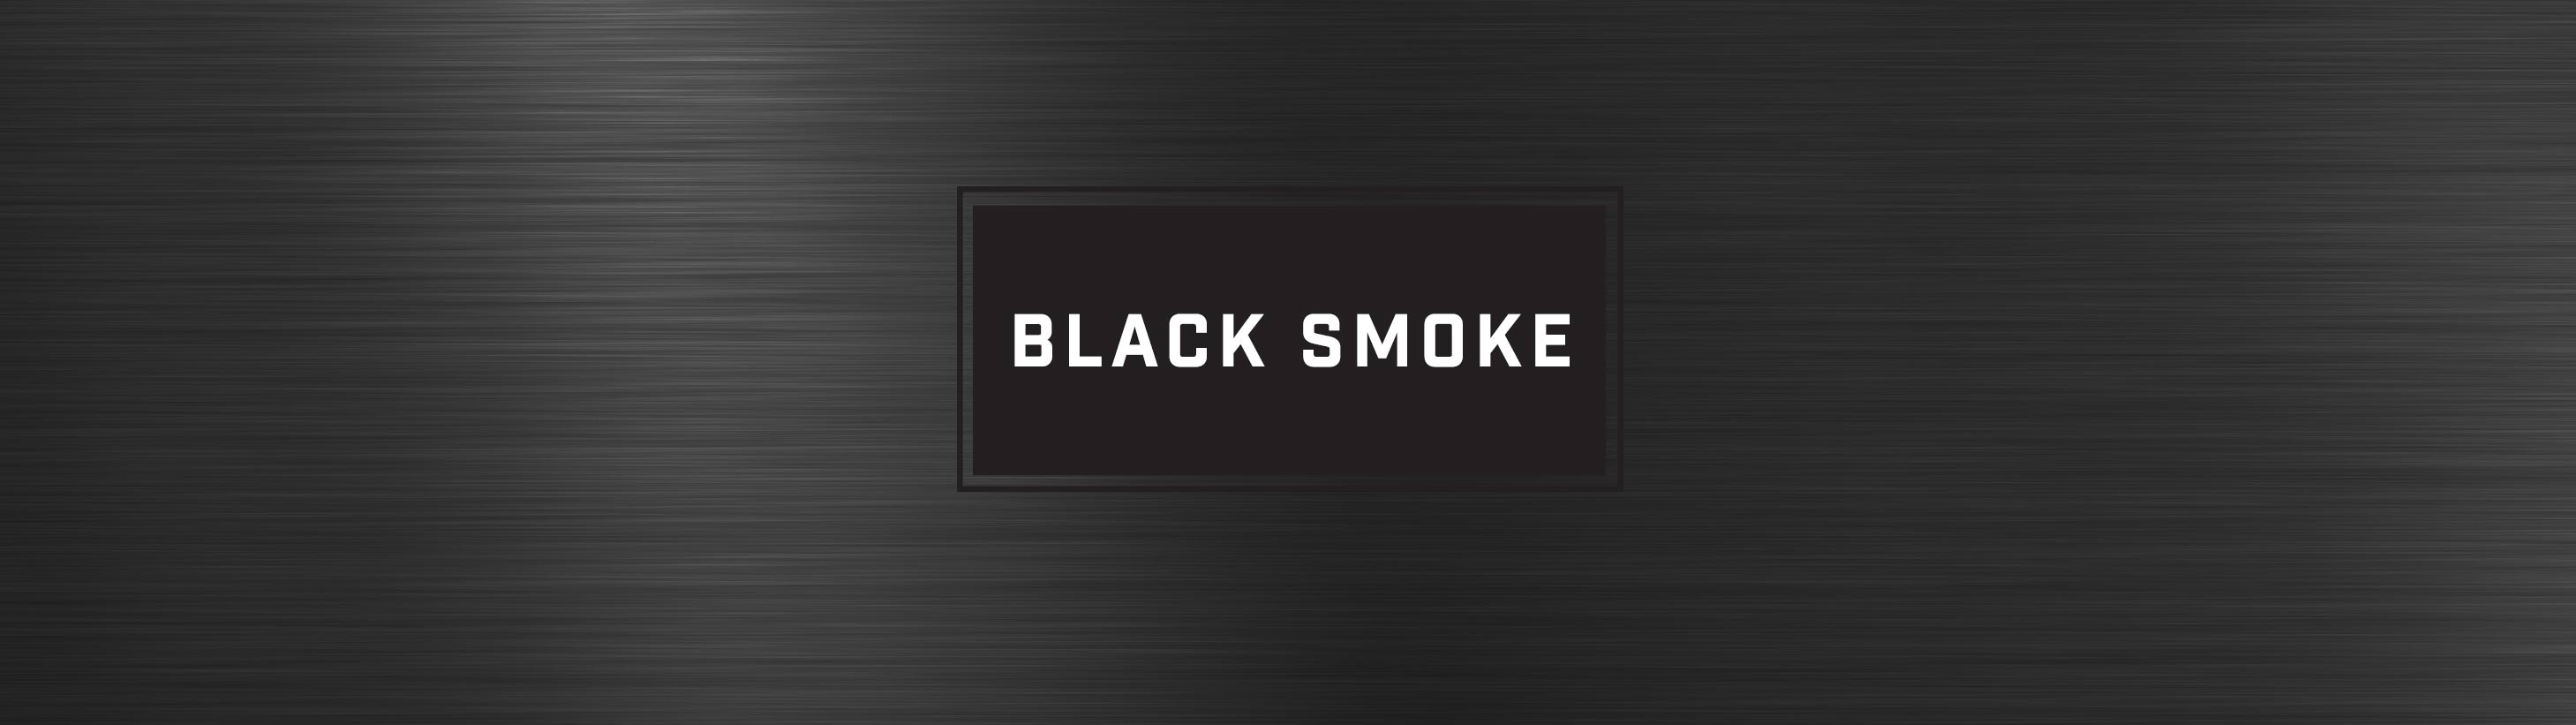 Featured Product: Black Smoke